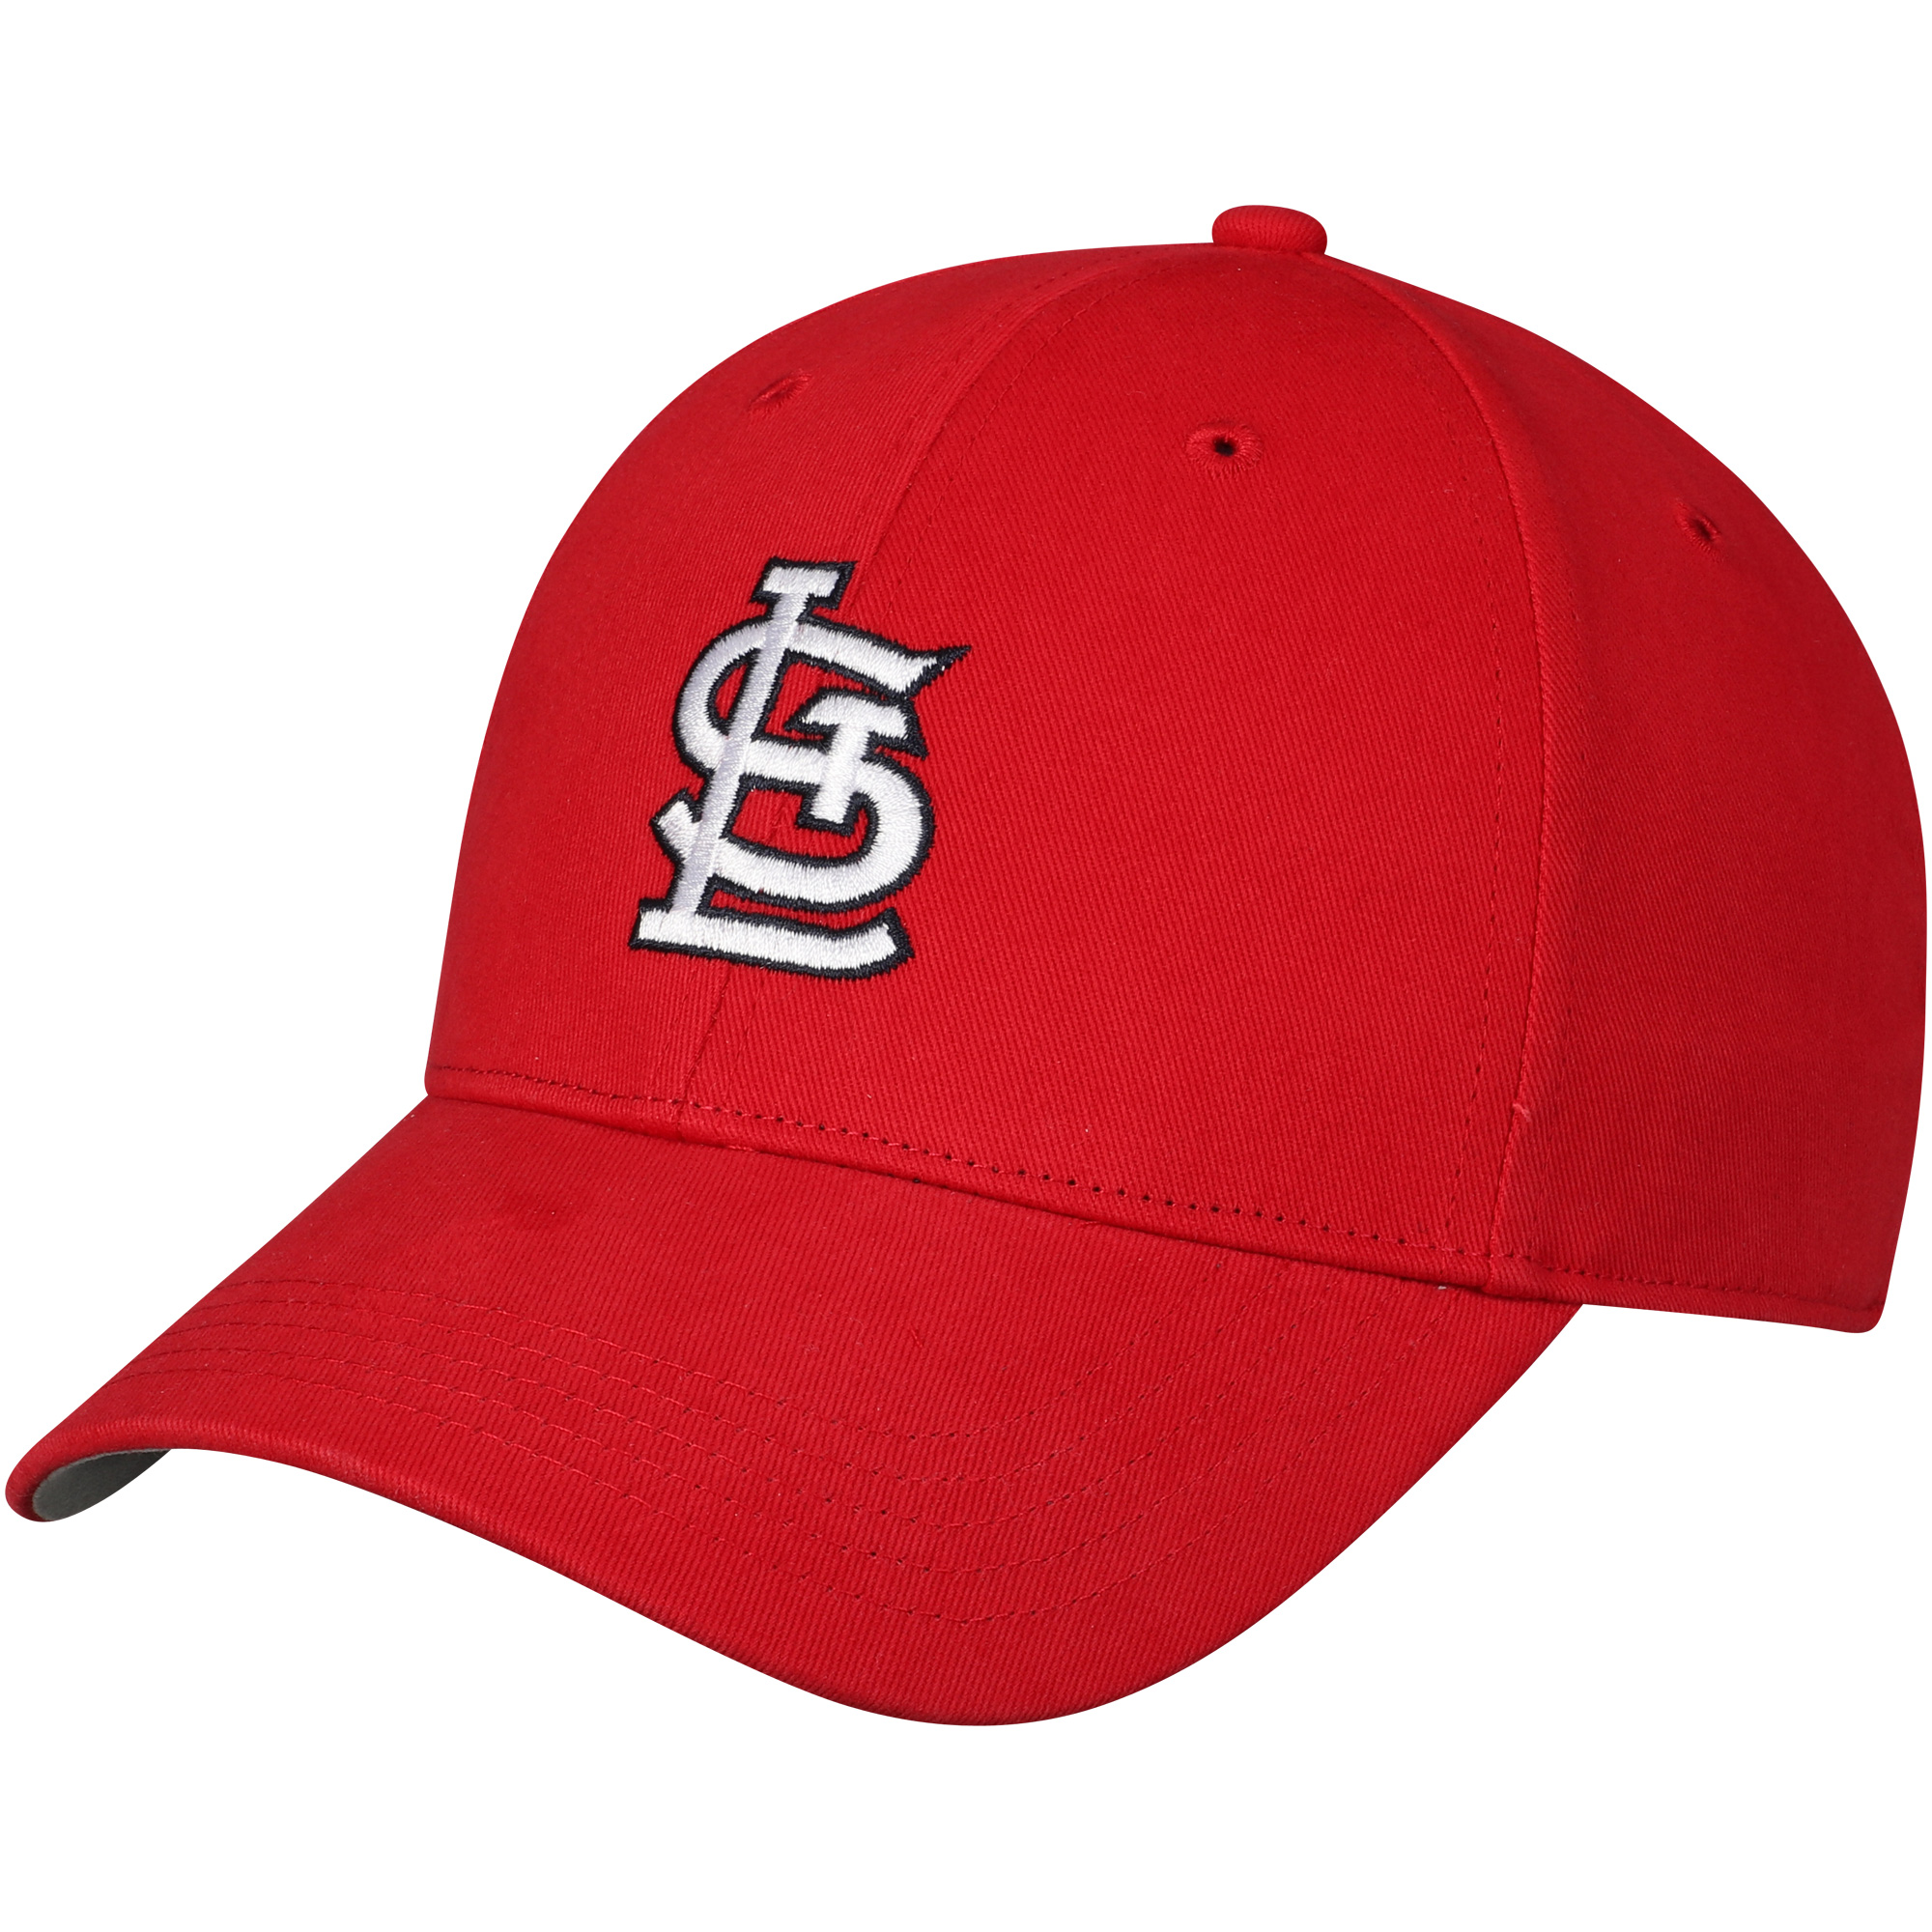 St. Louis Cardinals '47 Youth Basic Adjustable Hat - Red - OSFA